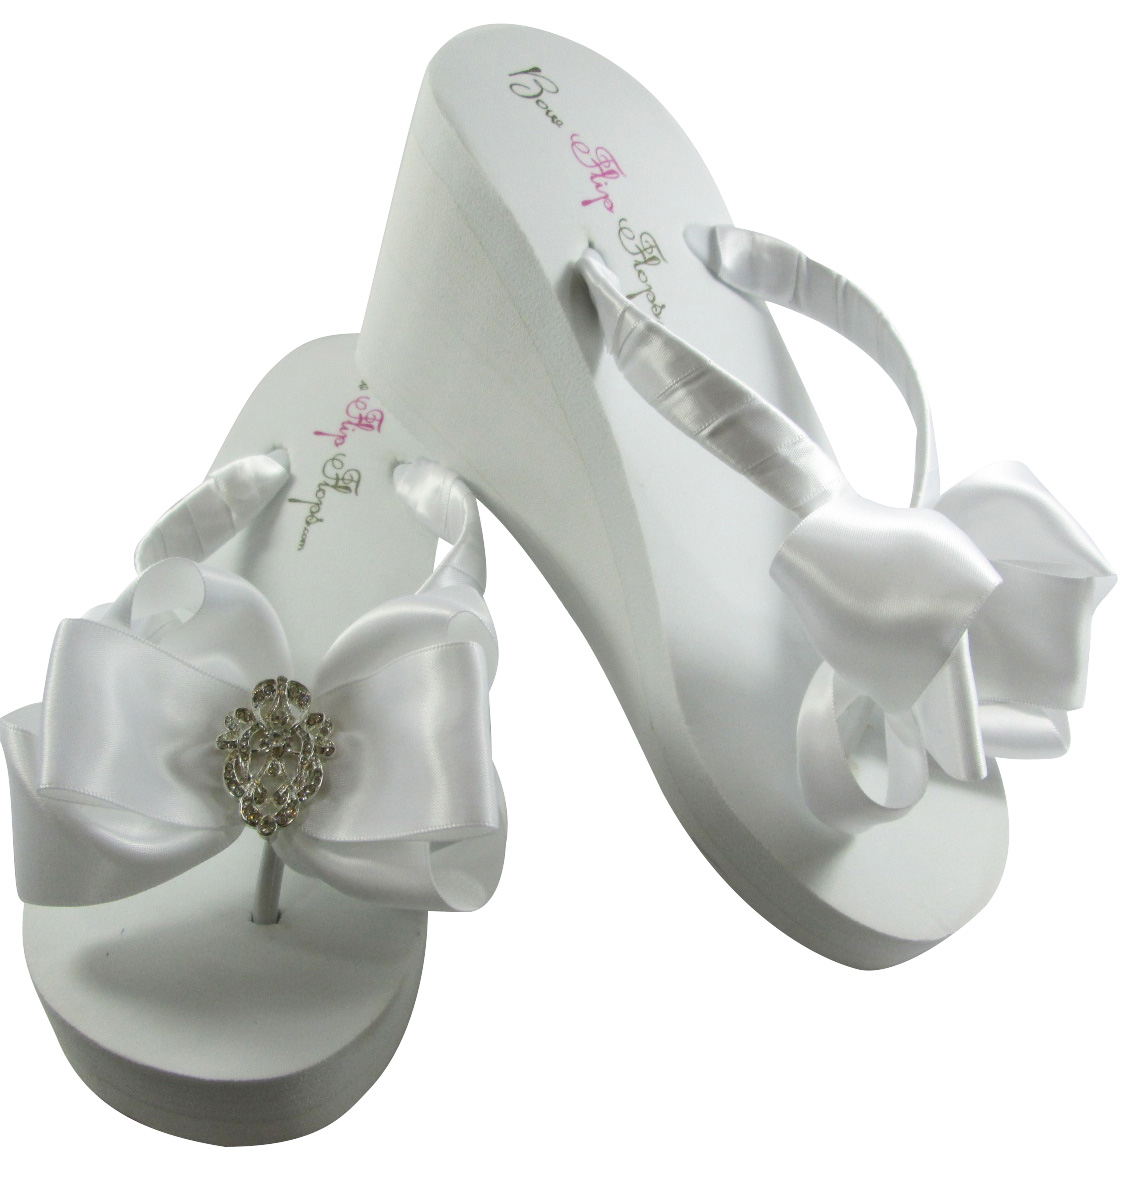 73e19cbd0 Bridal Flip Flops with Vintage Flower   Lace Embellishments